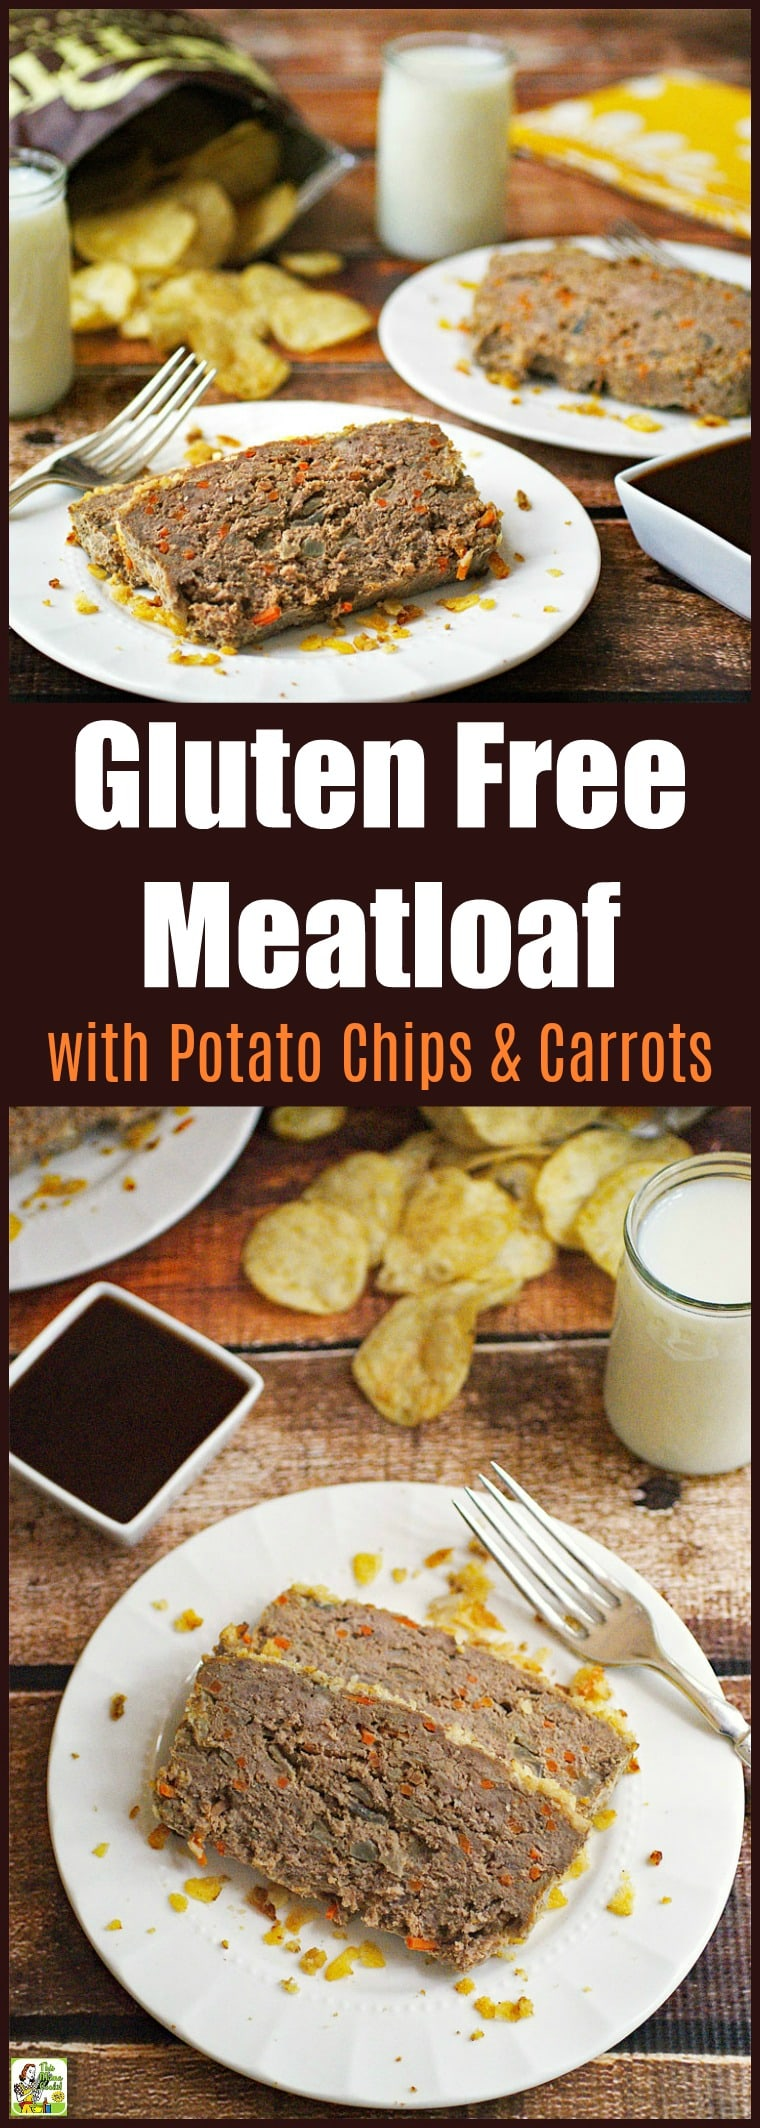 Gluten Free Meatloaf Recipe with Potato Chips & Carrots